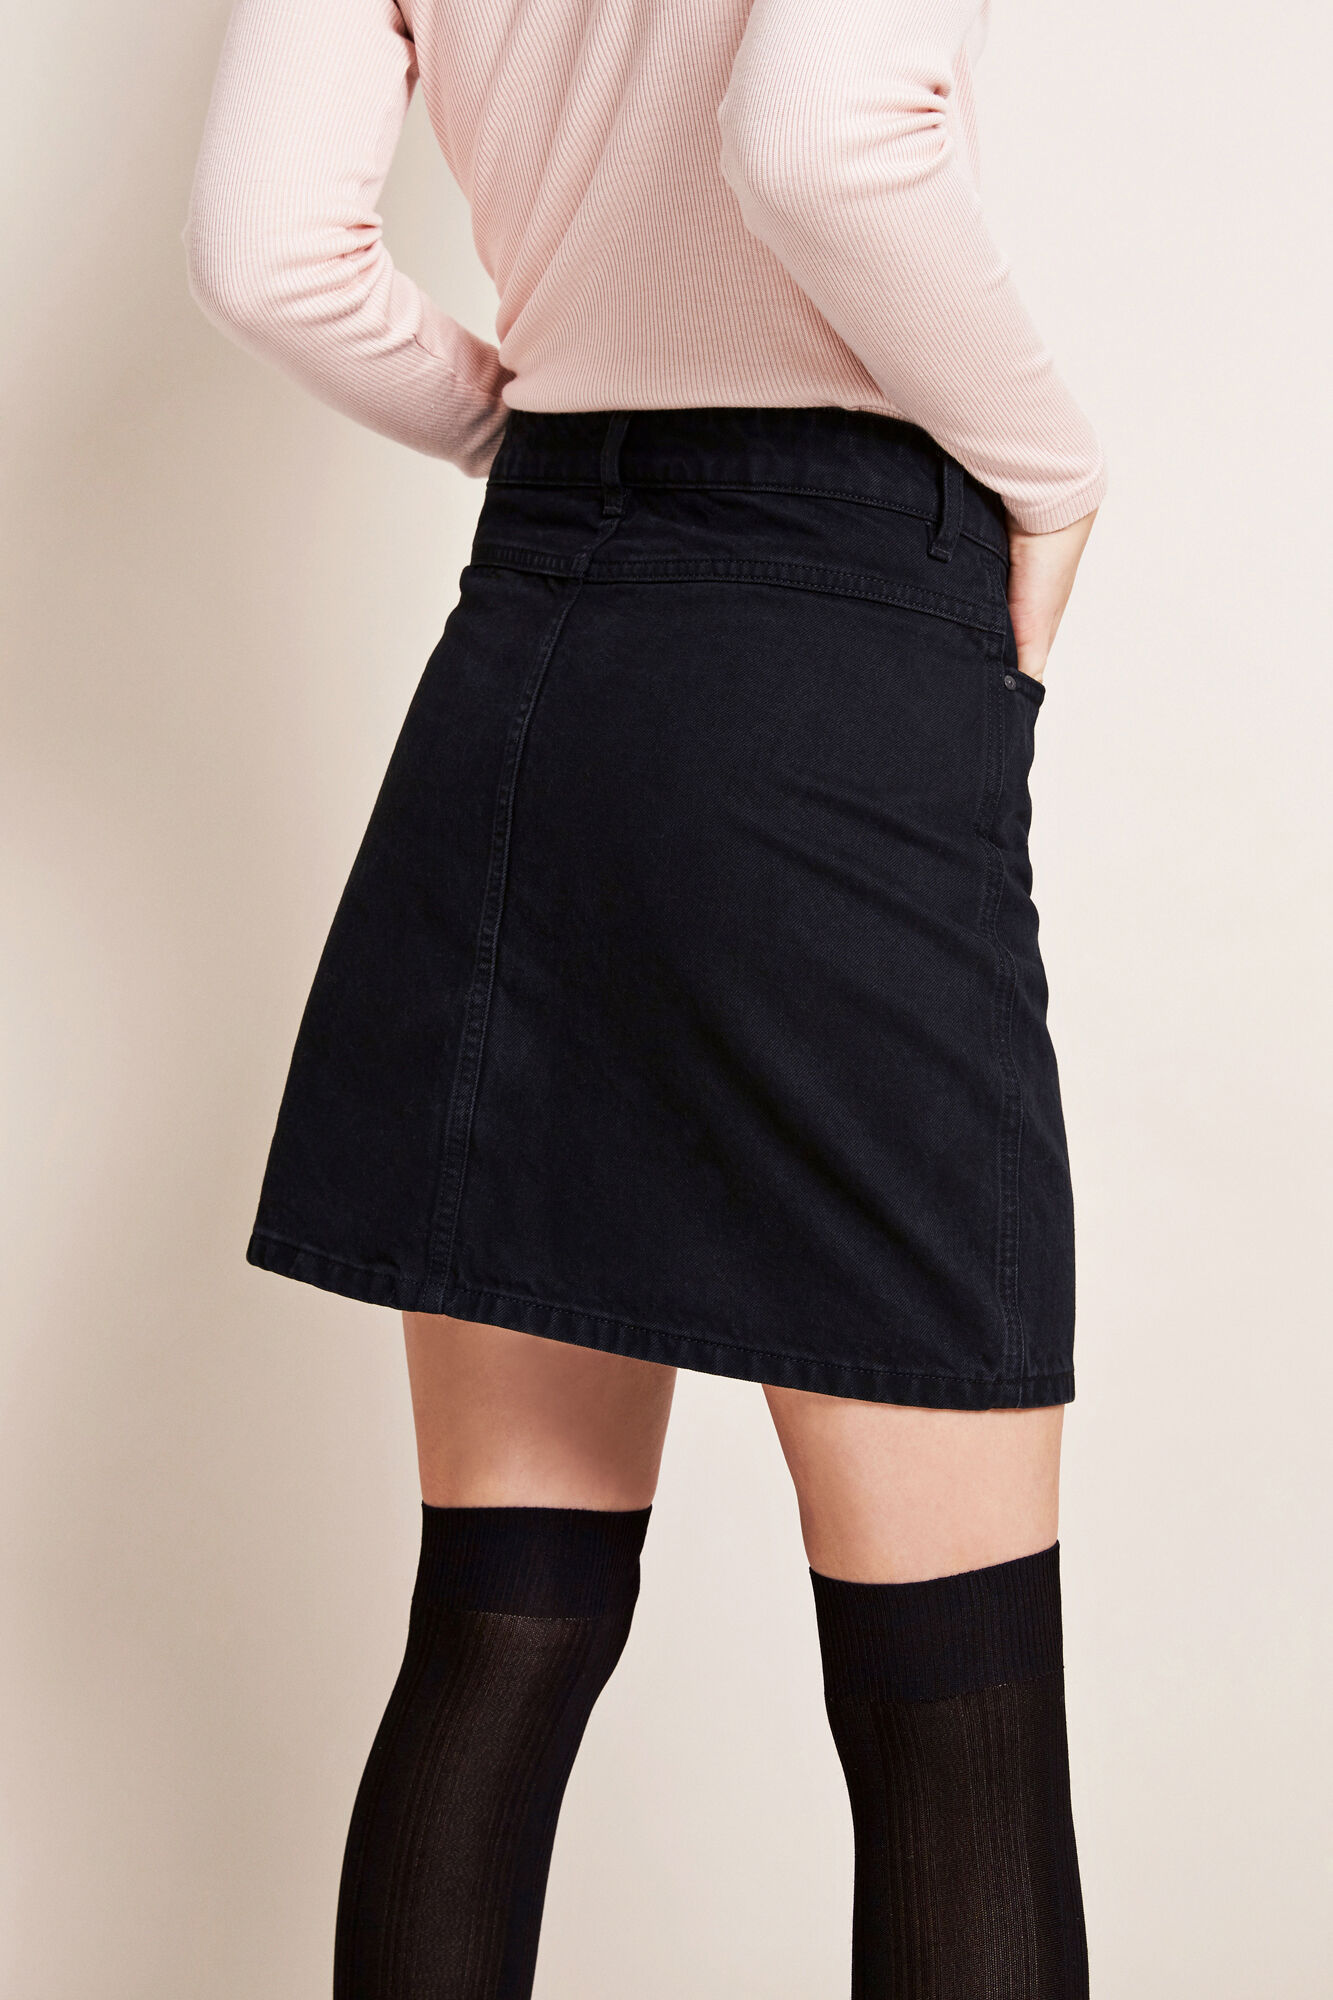 ENRIDER DENIM SKIRT WORN BLACK 6356